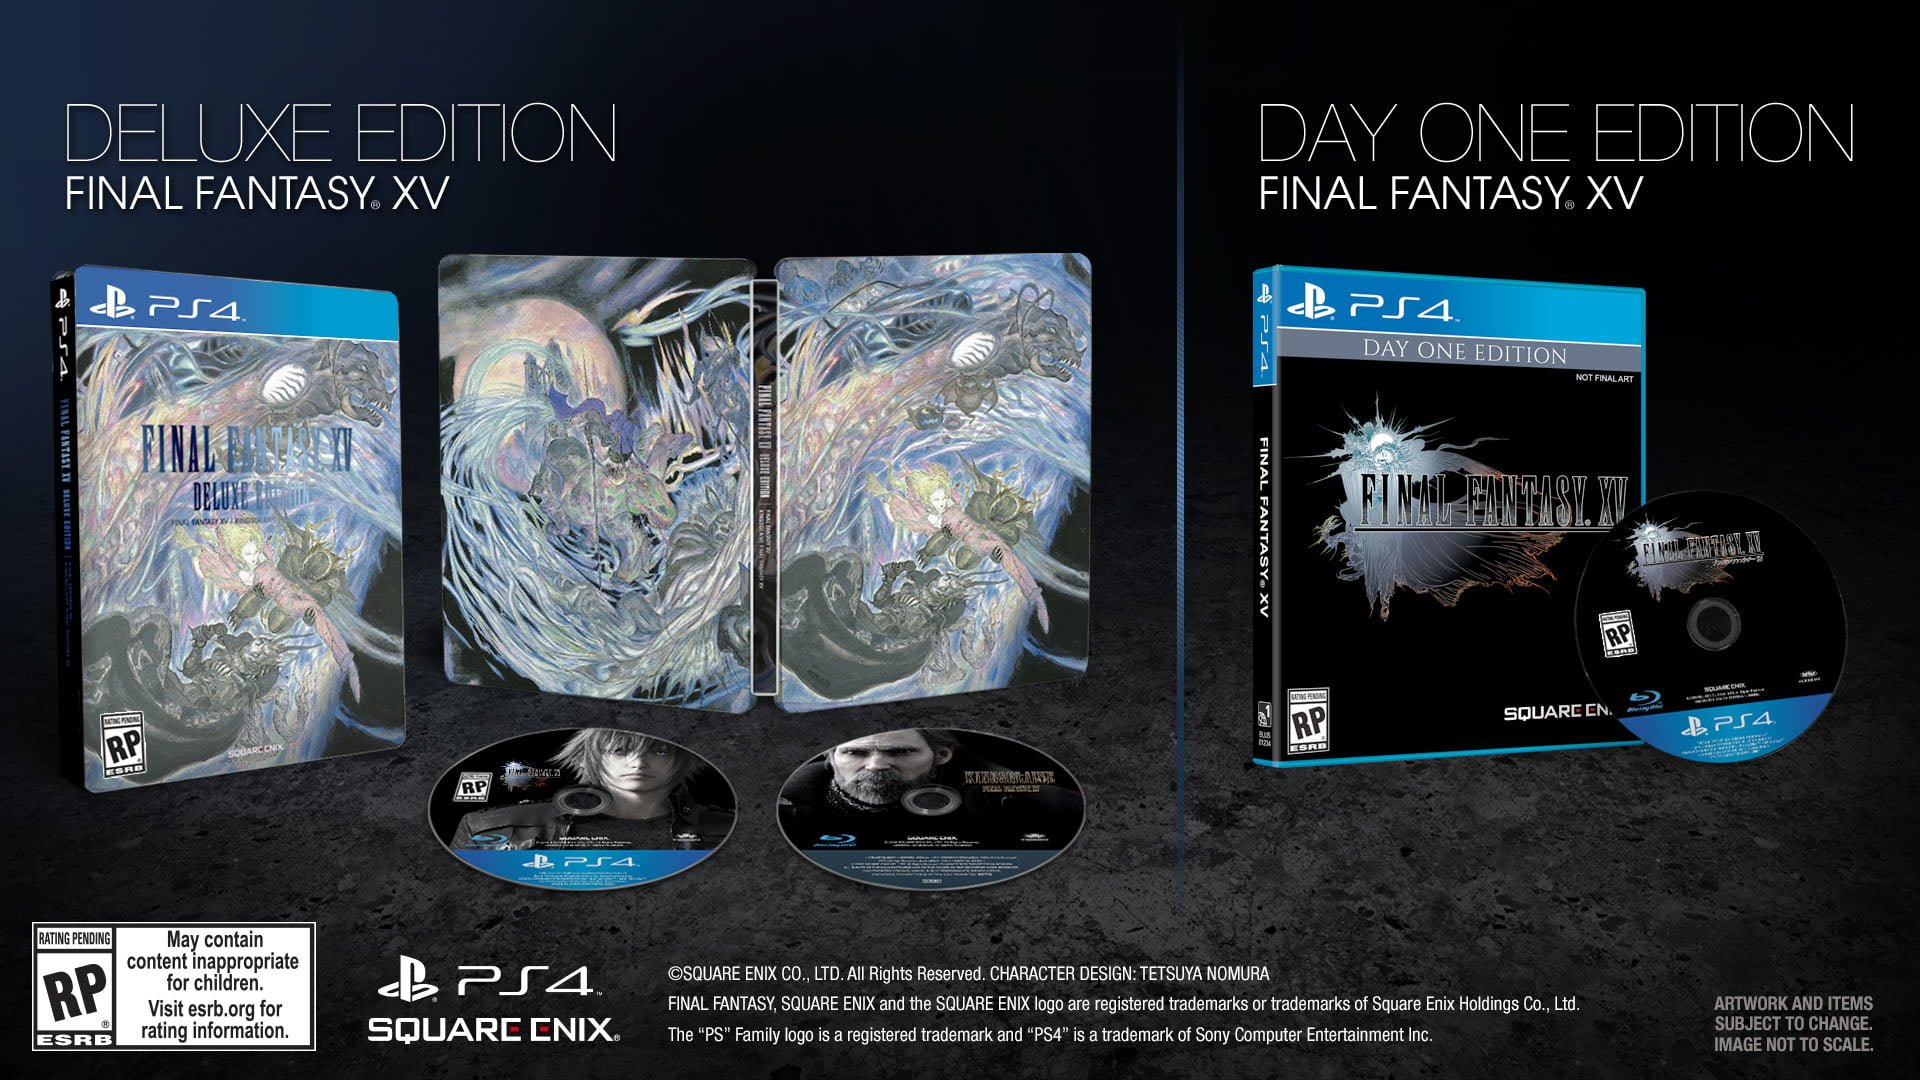 Final Fantasy XV Uncovered Deluxe Edition